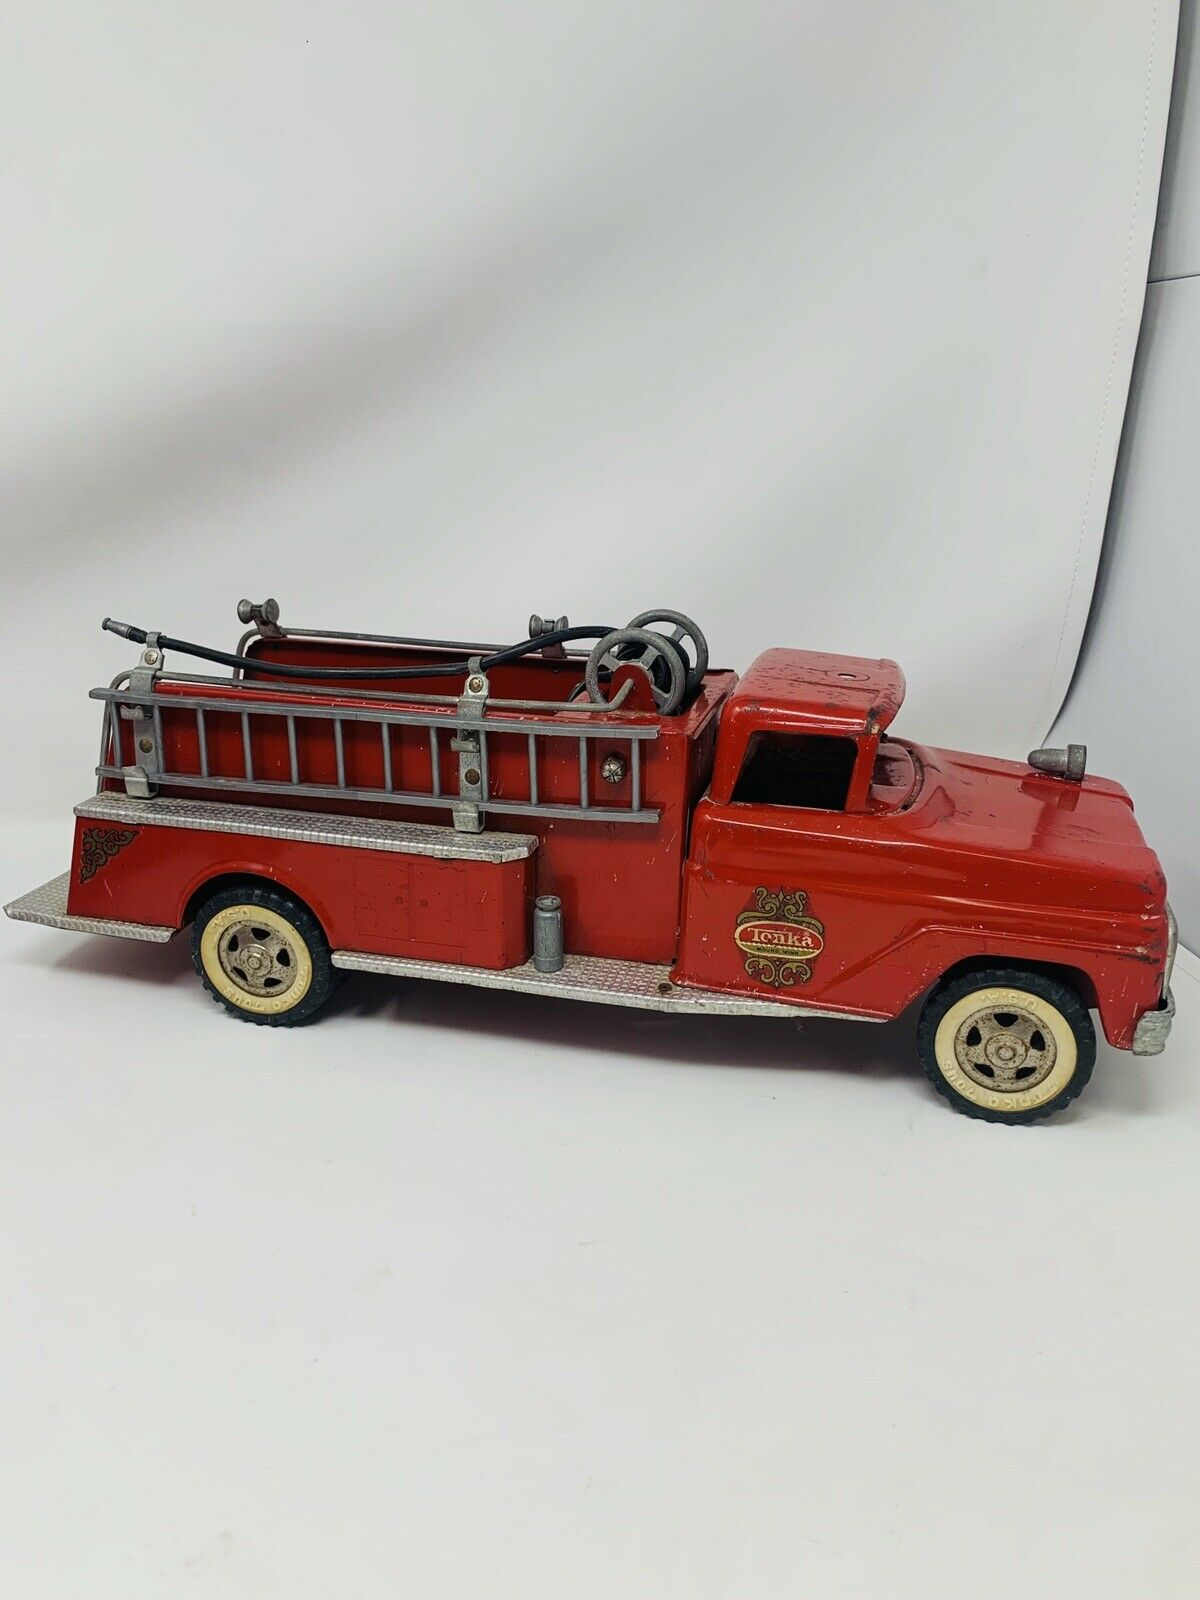 Tonka Toys USA Vintage Fire Truck rot Good Condition